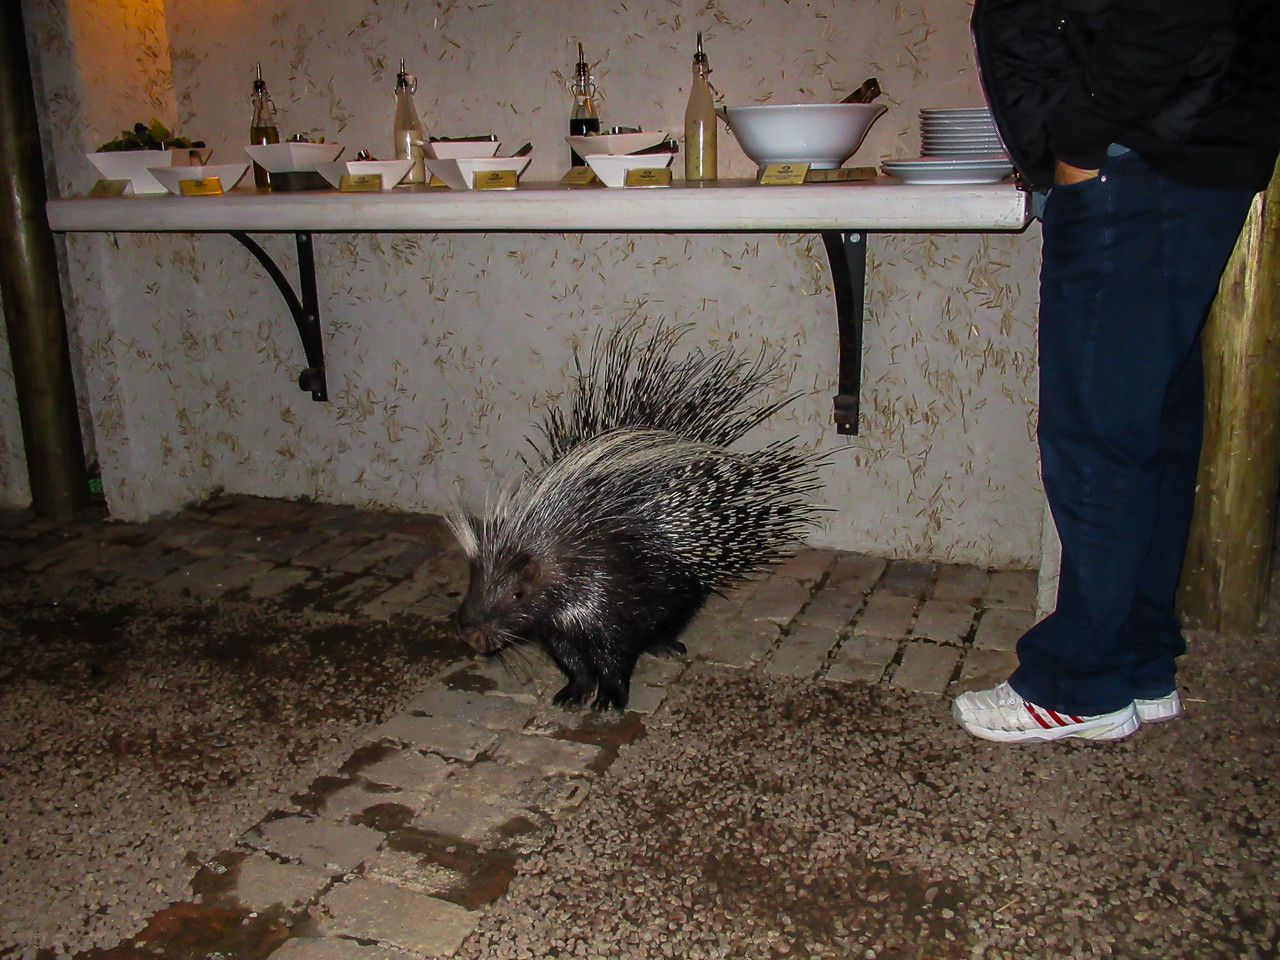 Sadie, the resident porcupine joined us for dinner nightly. :)